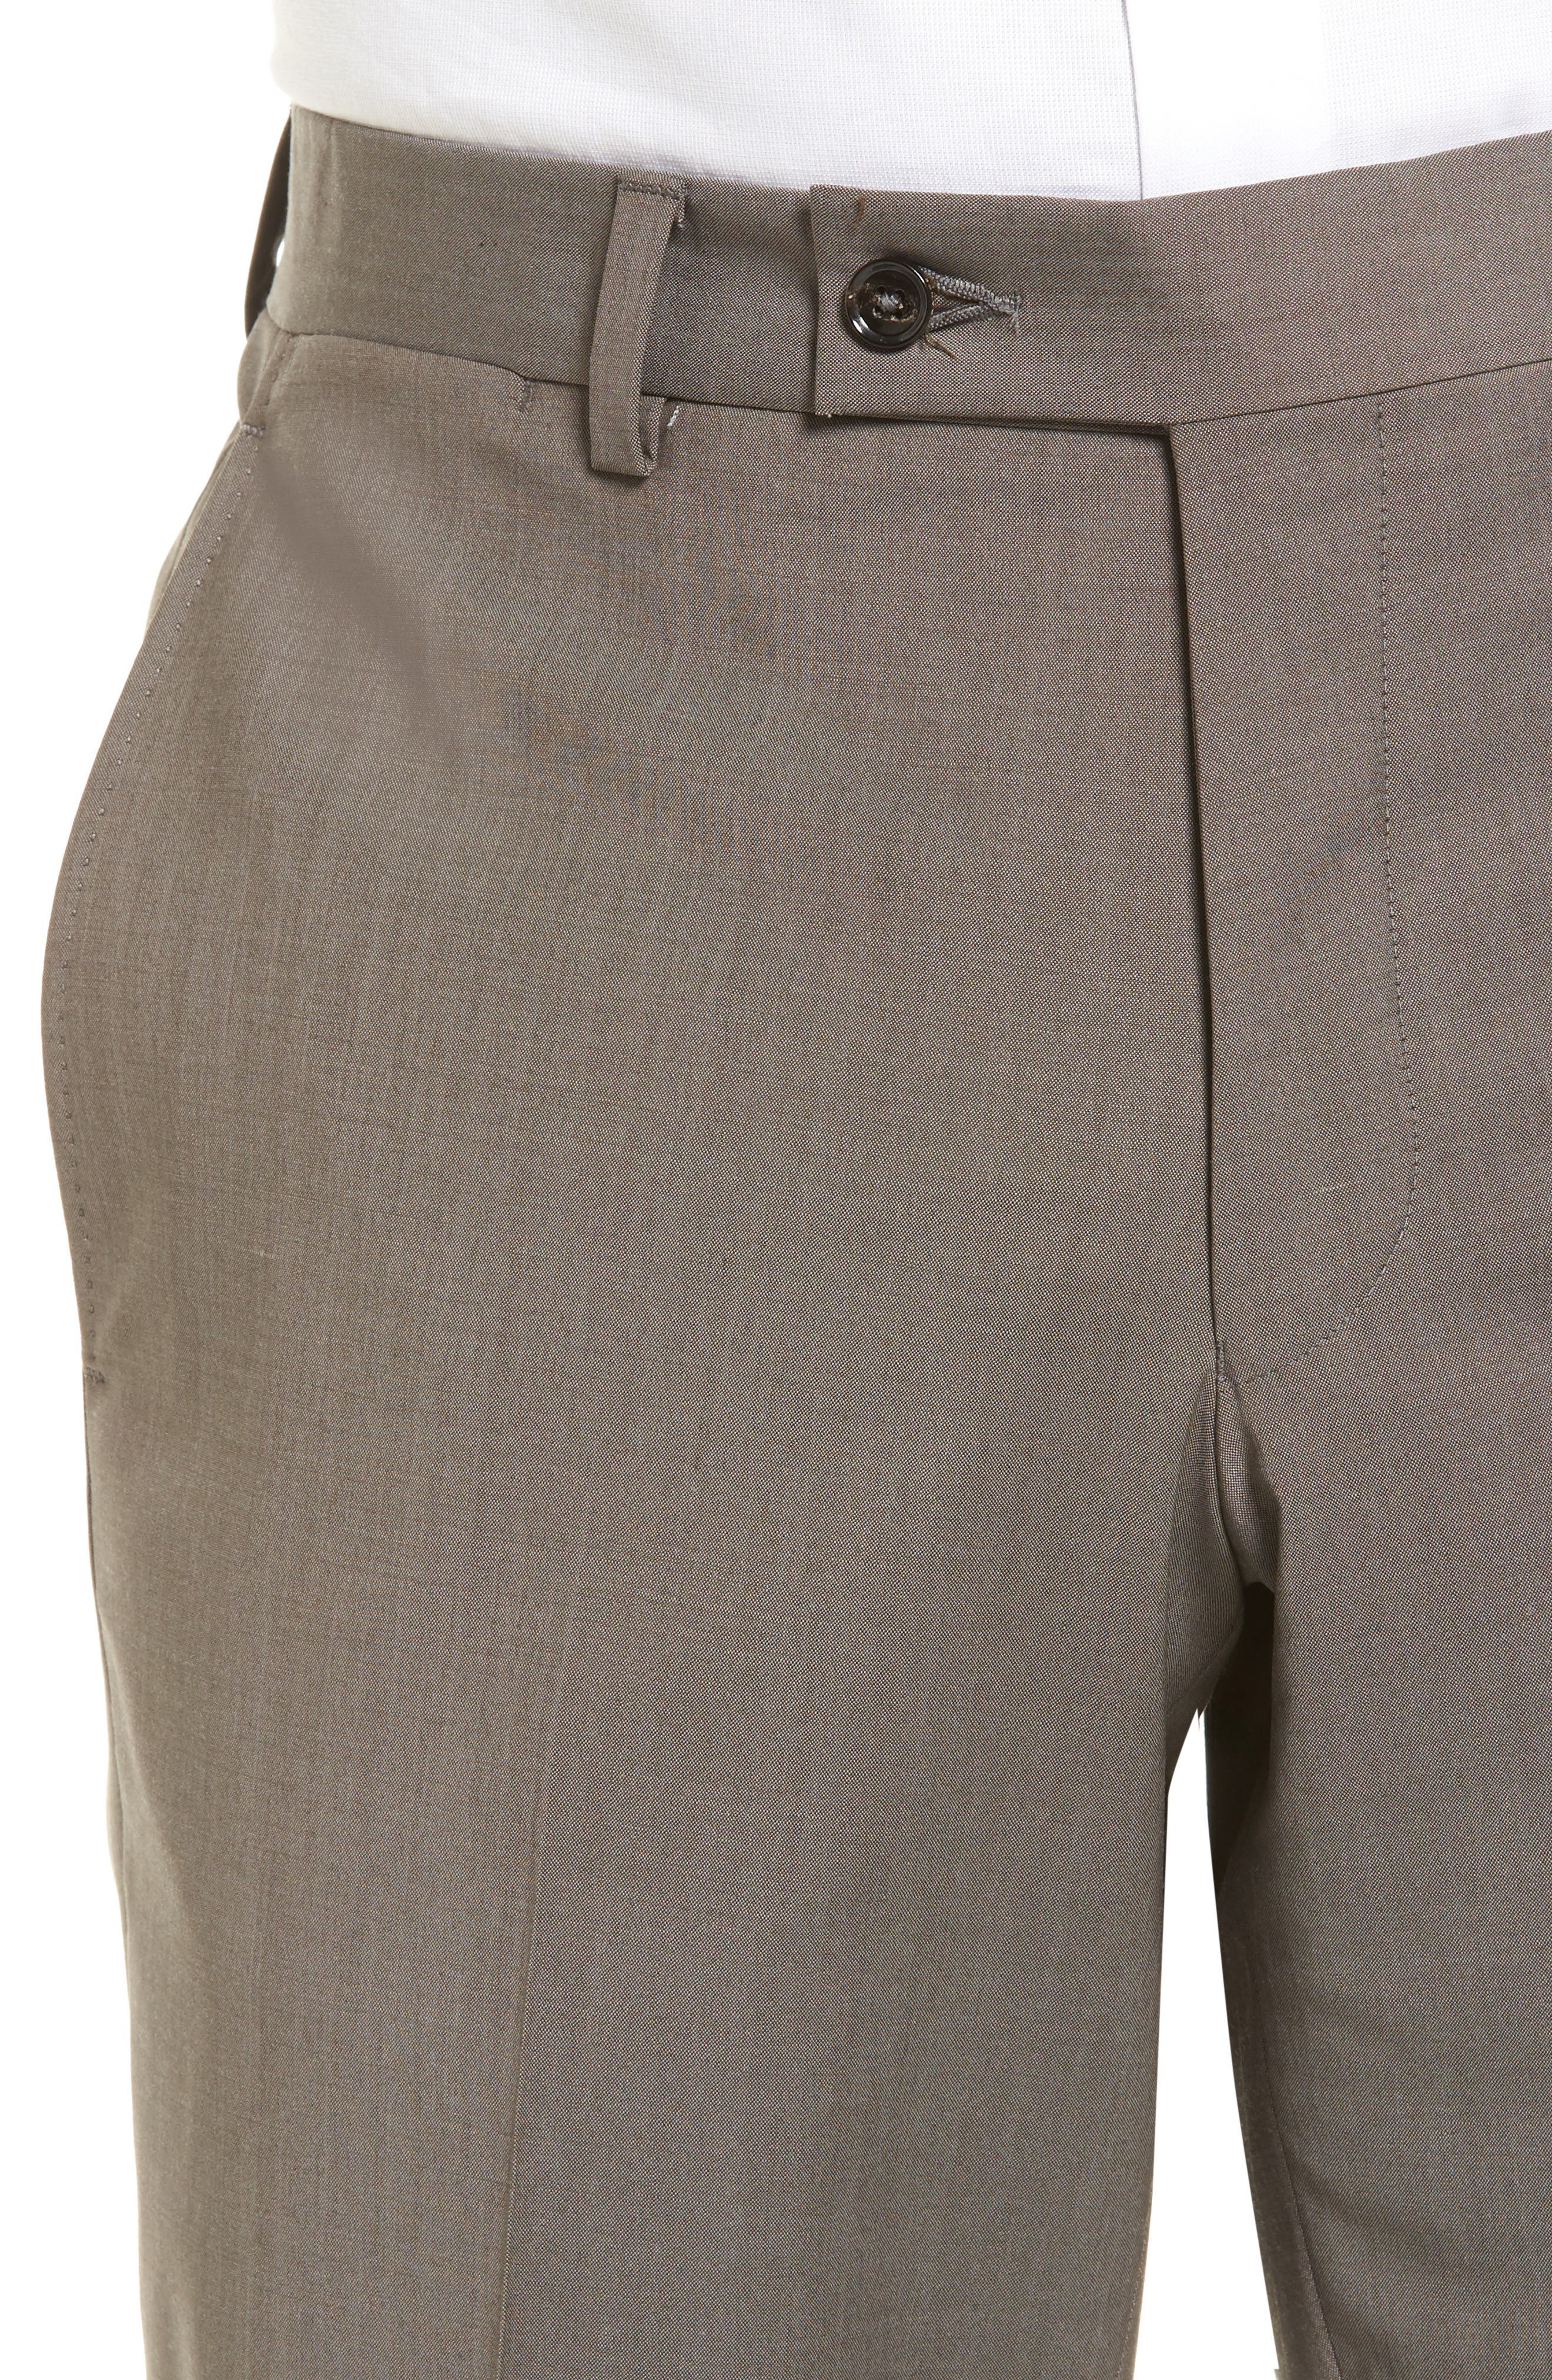 Jefferson Flat Front Stretch Wool Trousers,                             Alternate thumbnail 4, color,